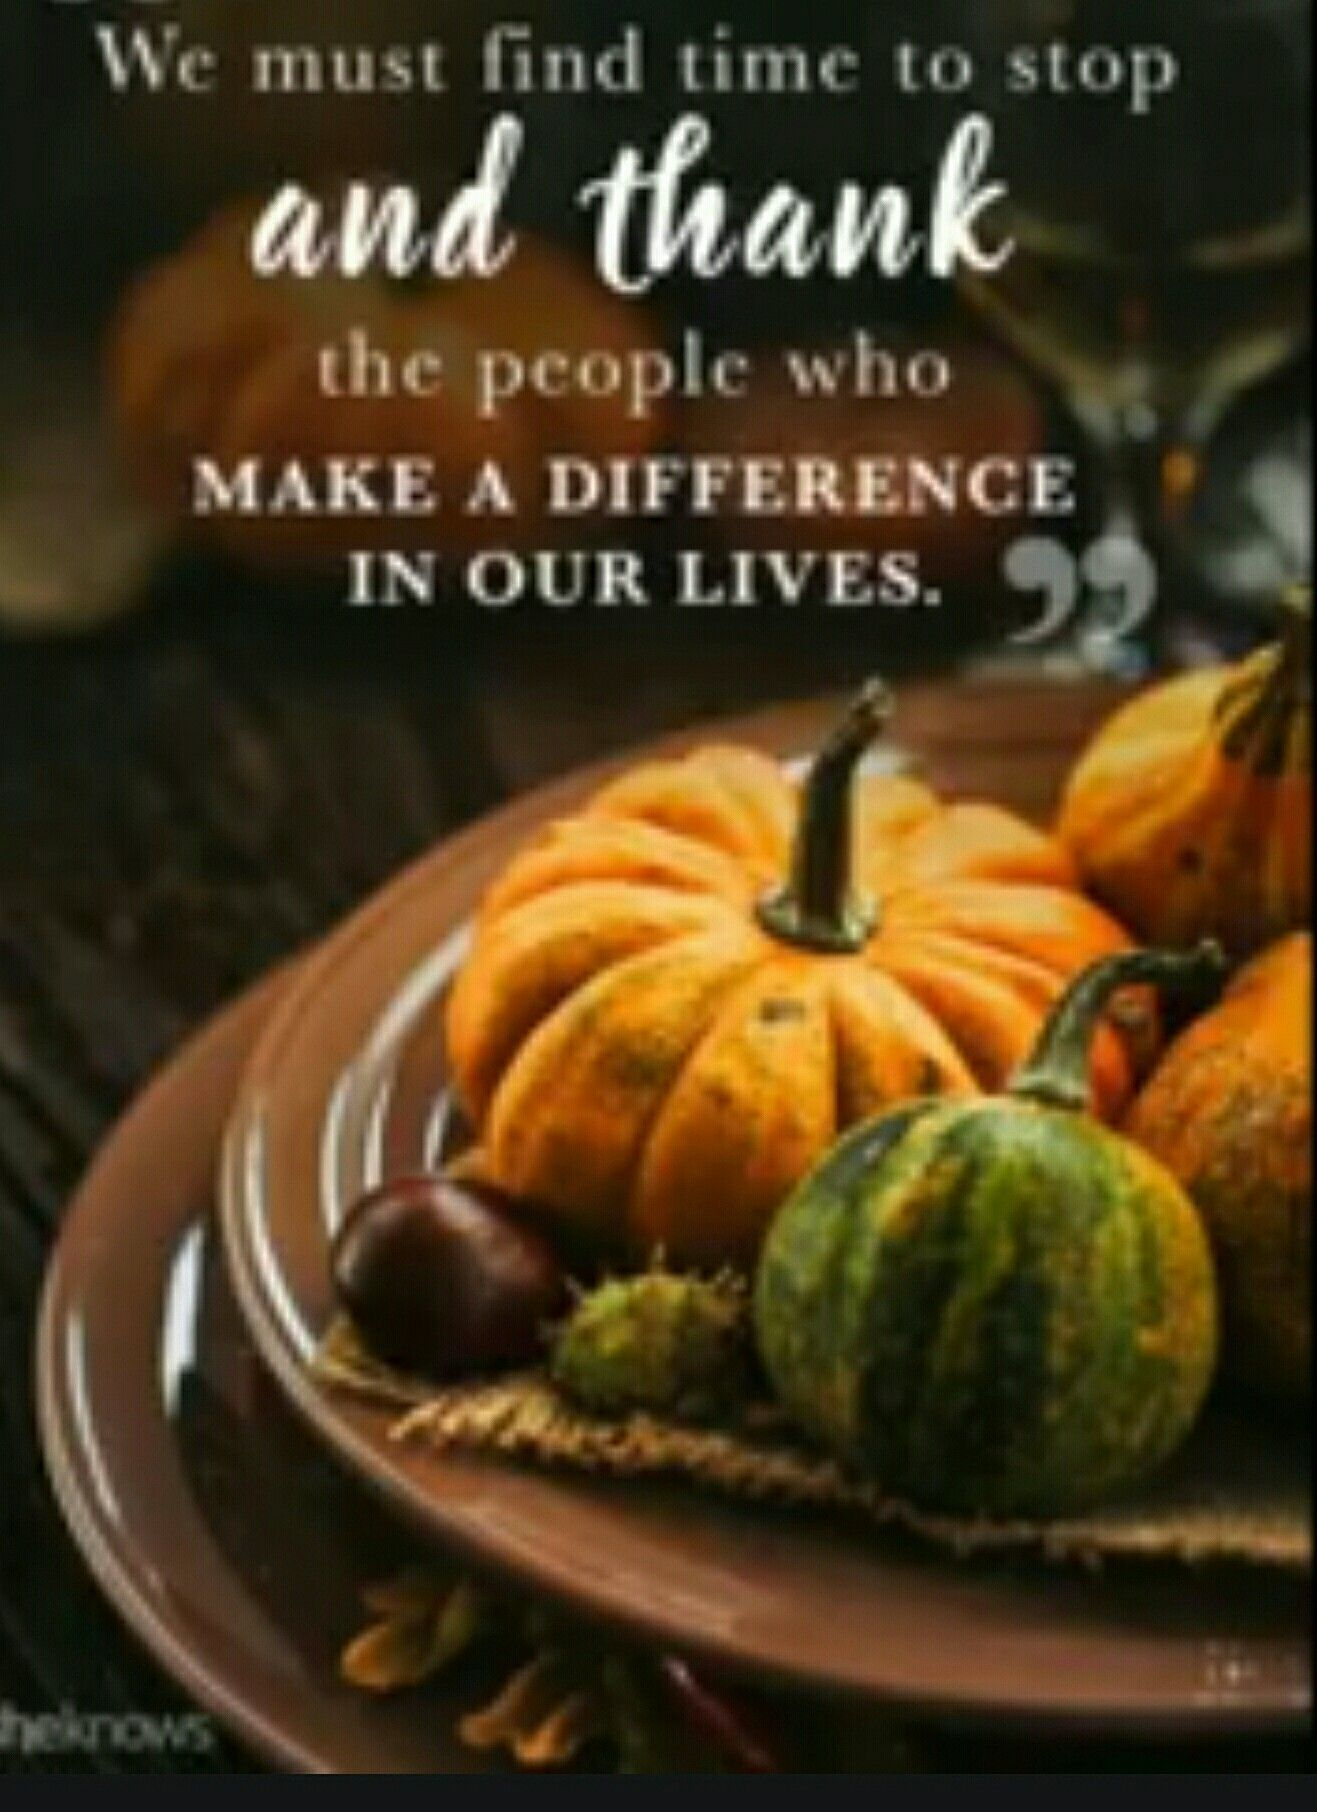 Pin By Cheryl Clowers On Thanksgiving Day Greetings Pinterest